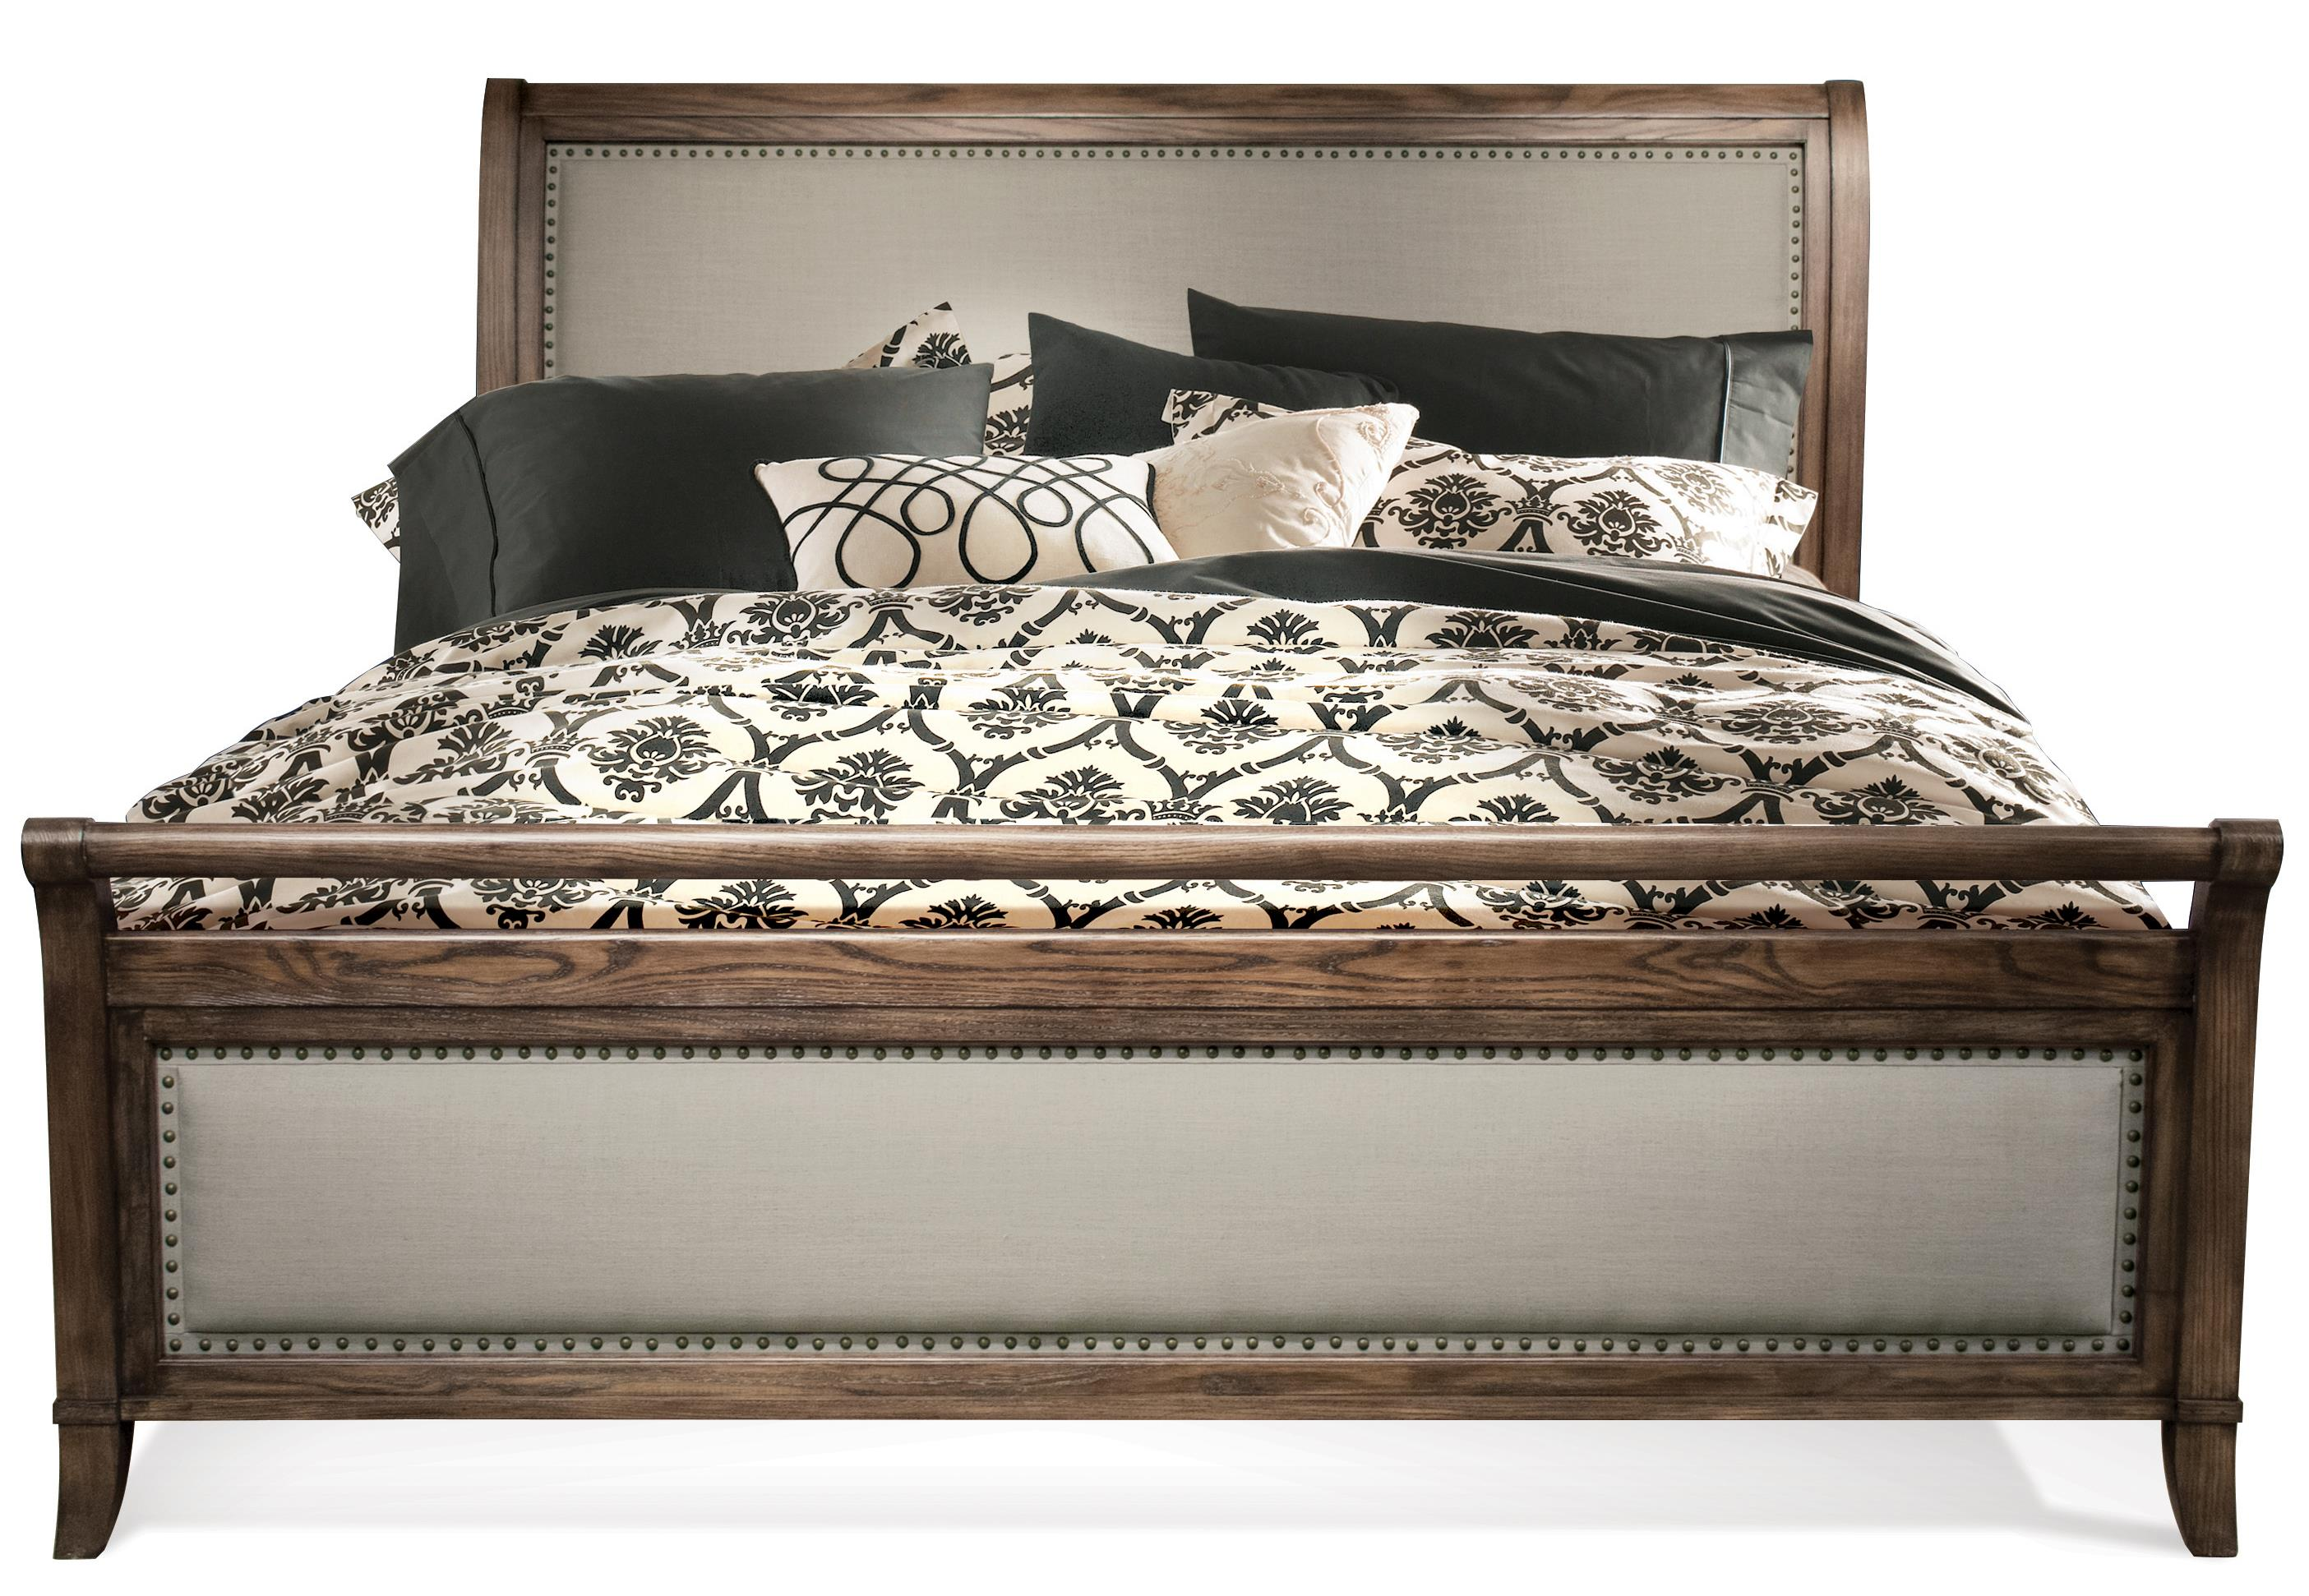 Riverside Furniture Belmeade Queen Sleigh Upholstered Bed - Item Number: 15874+75+76